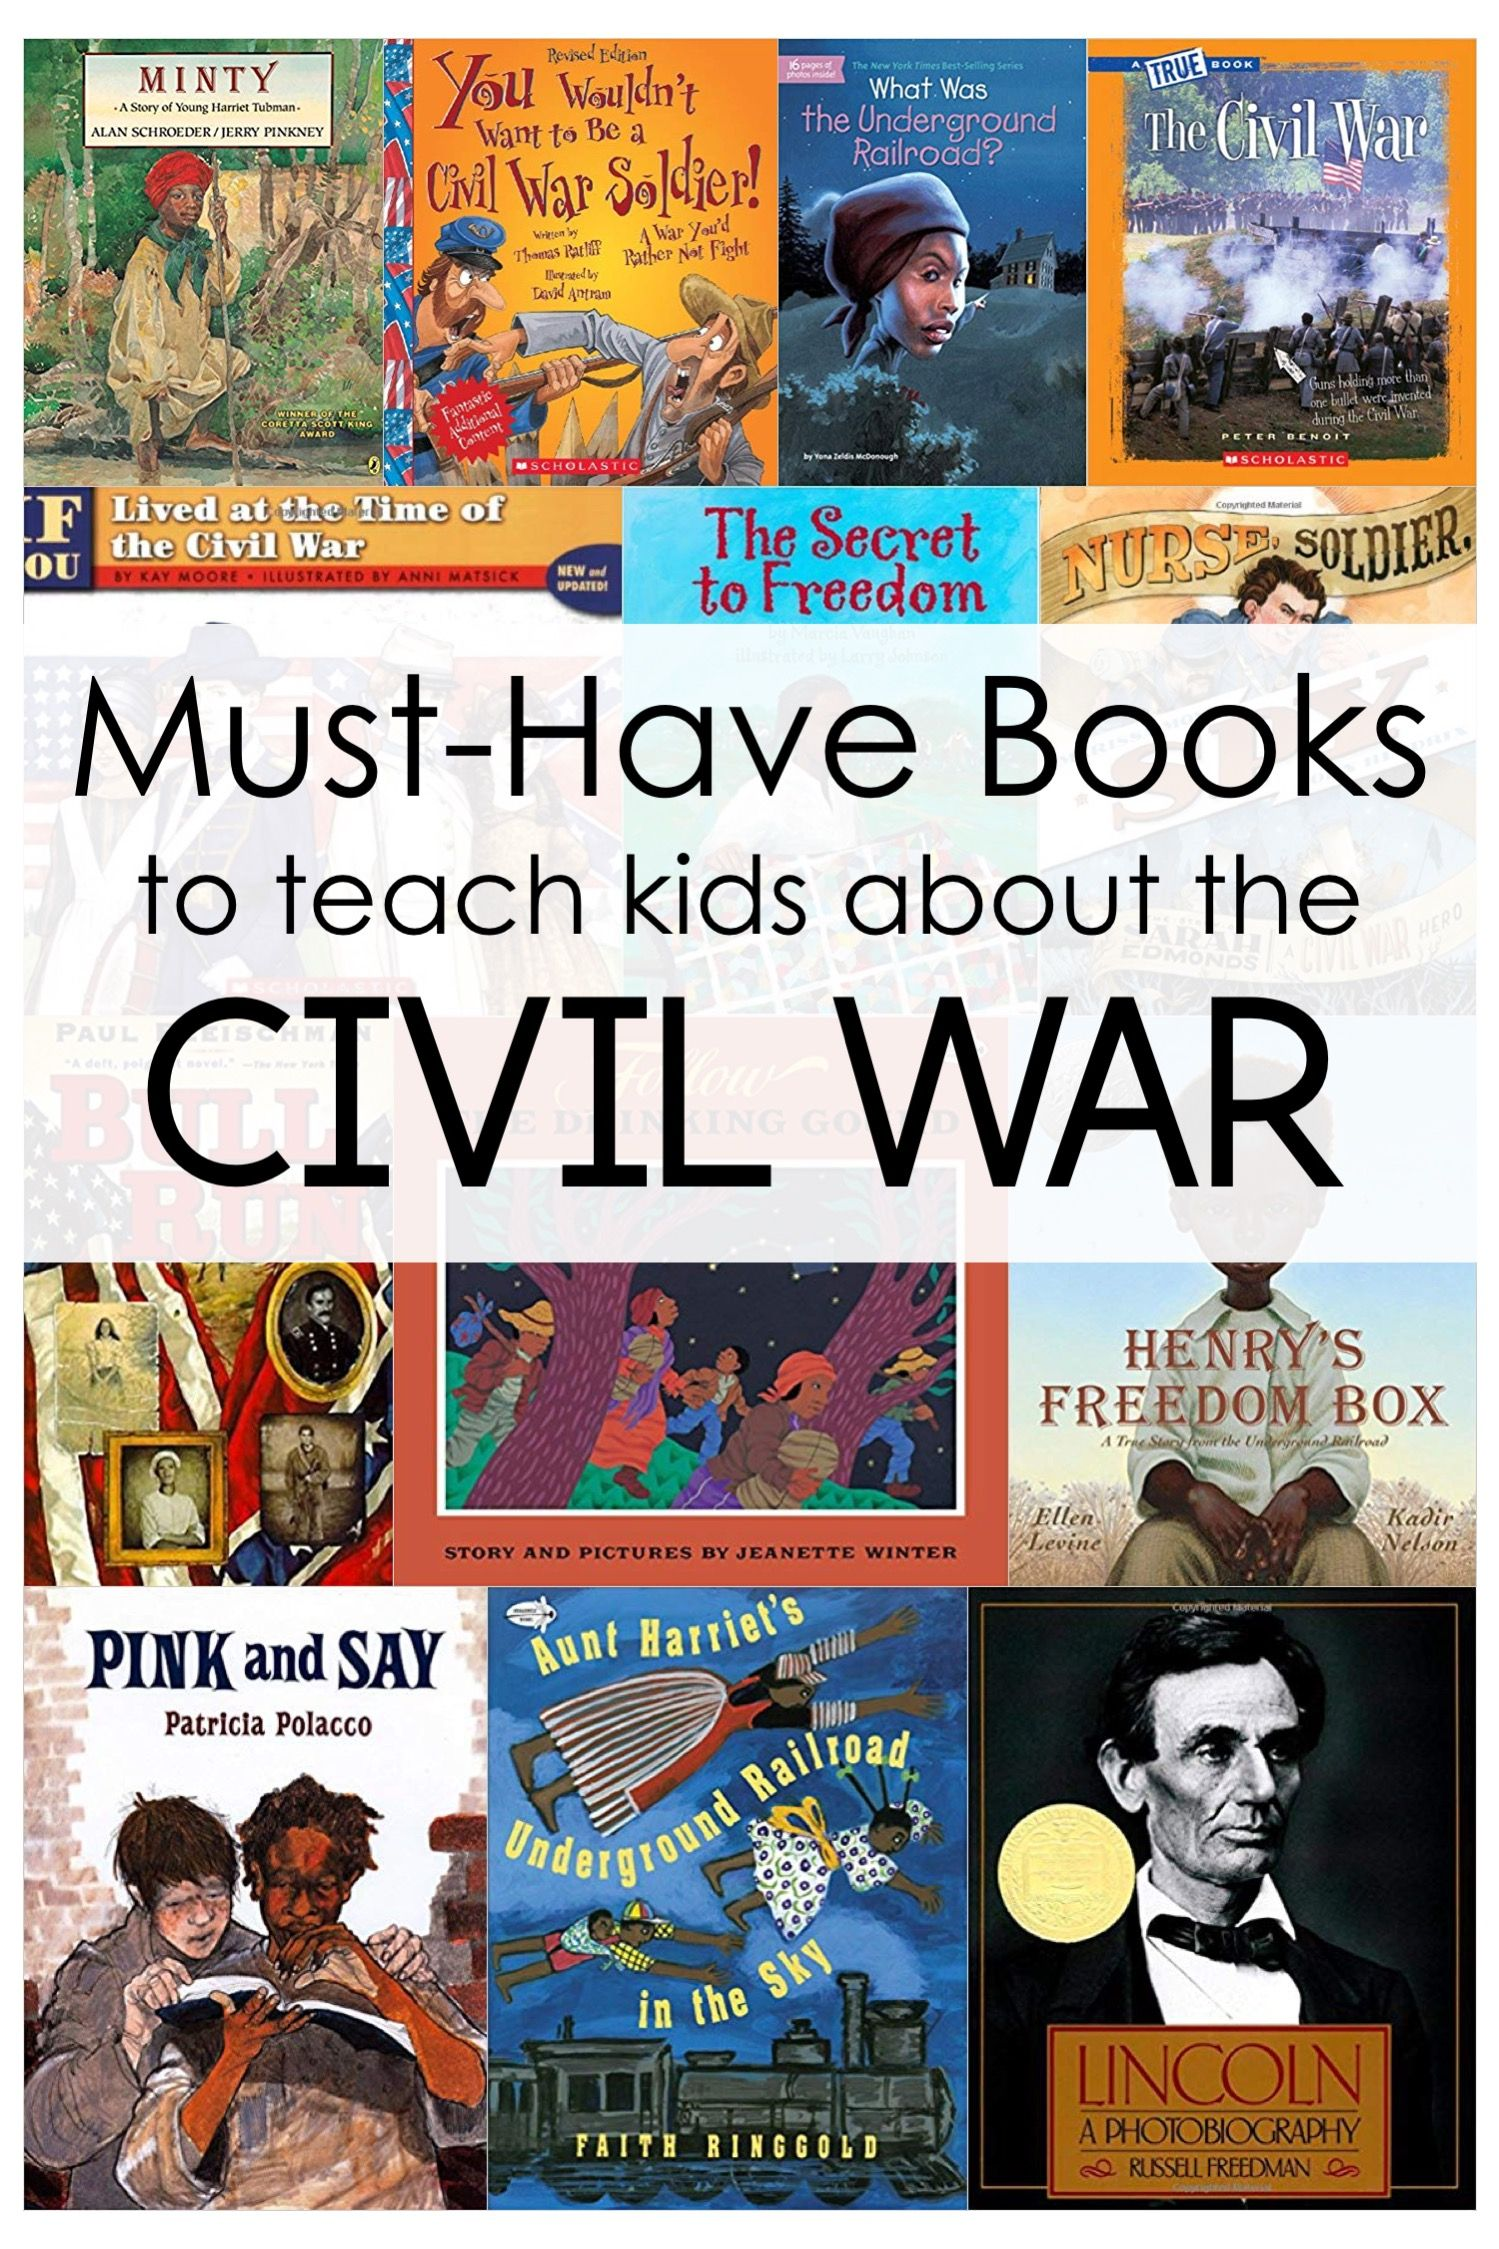 Here Are Some Of My Favorite Civil War Books For Upper